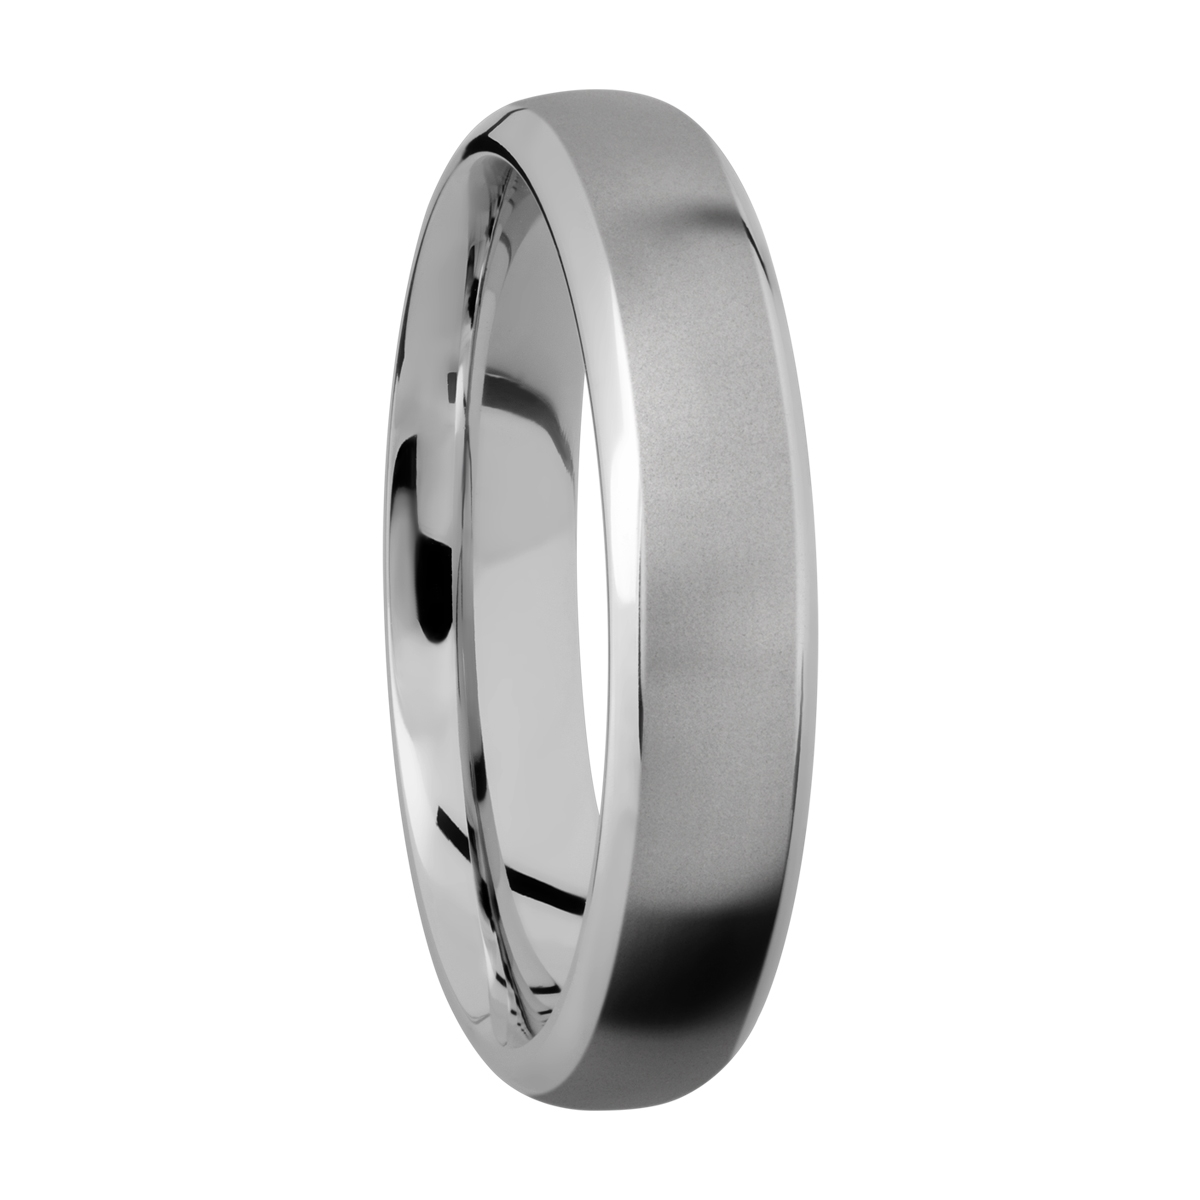 Lashbrook 5DB Titanium Wedding Ring or Band Alternative View 1